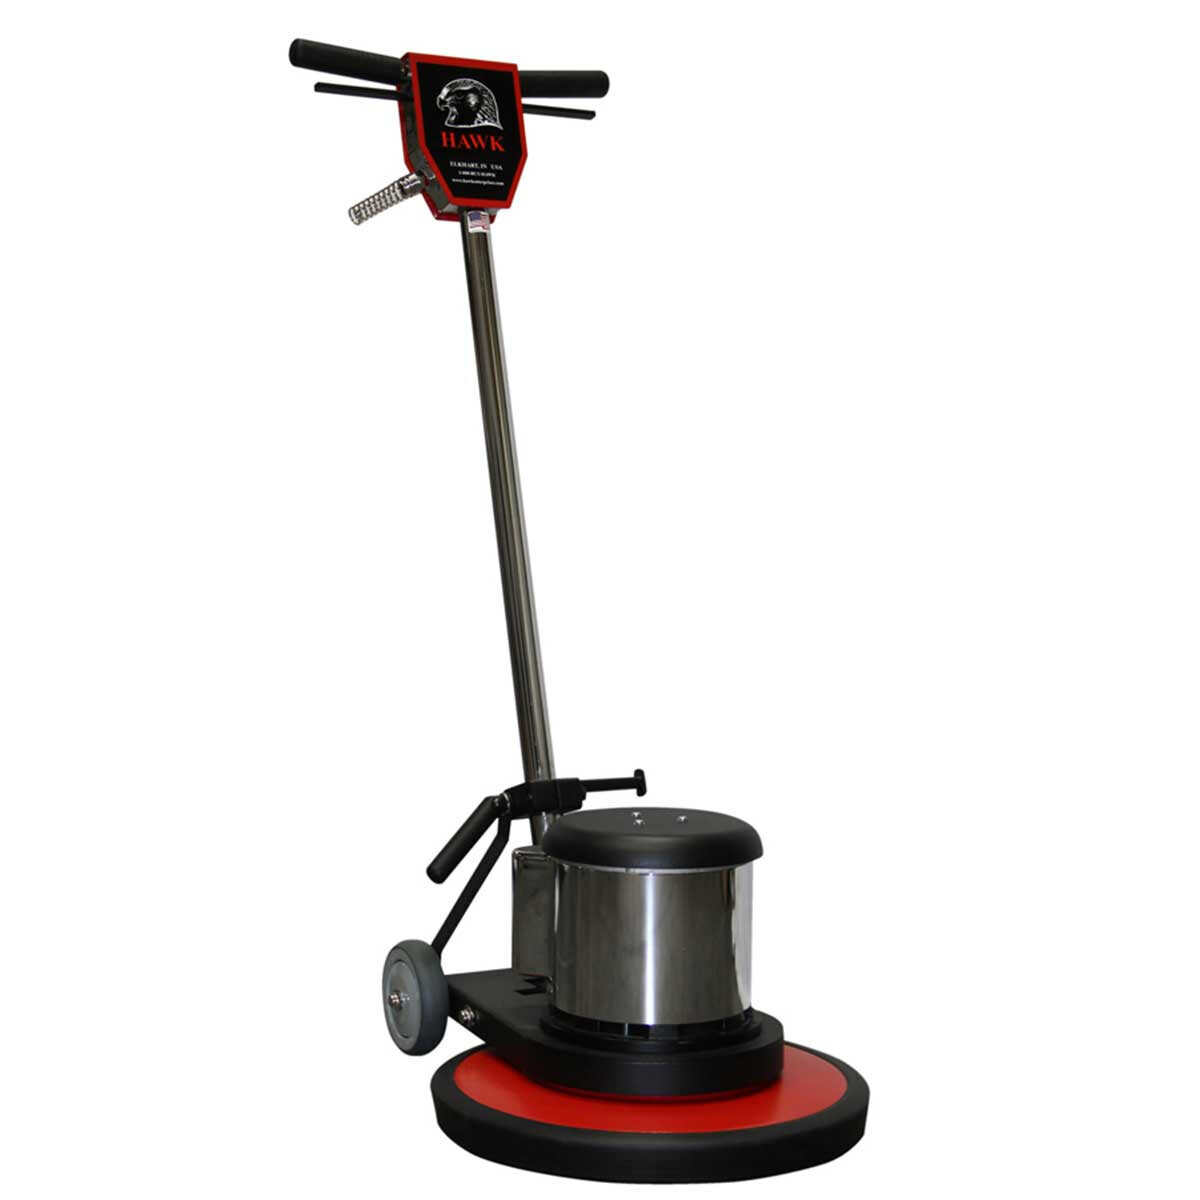 hawk 17 inch XHD heavy duty floor machine F27-01